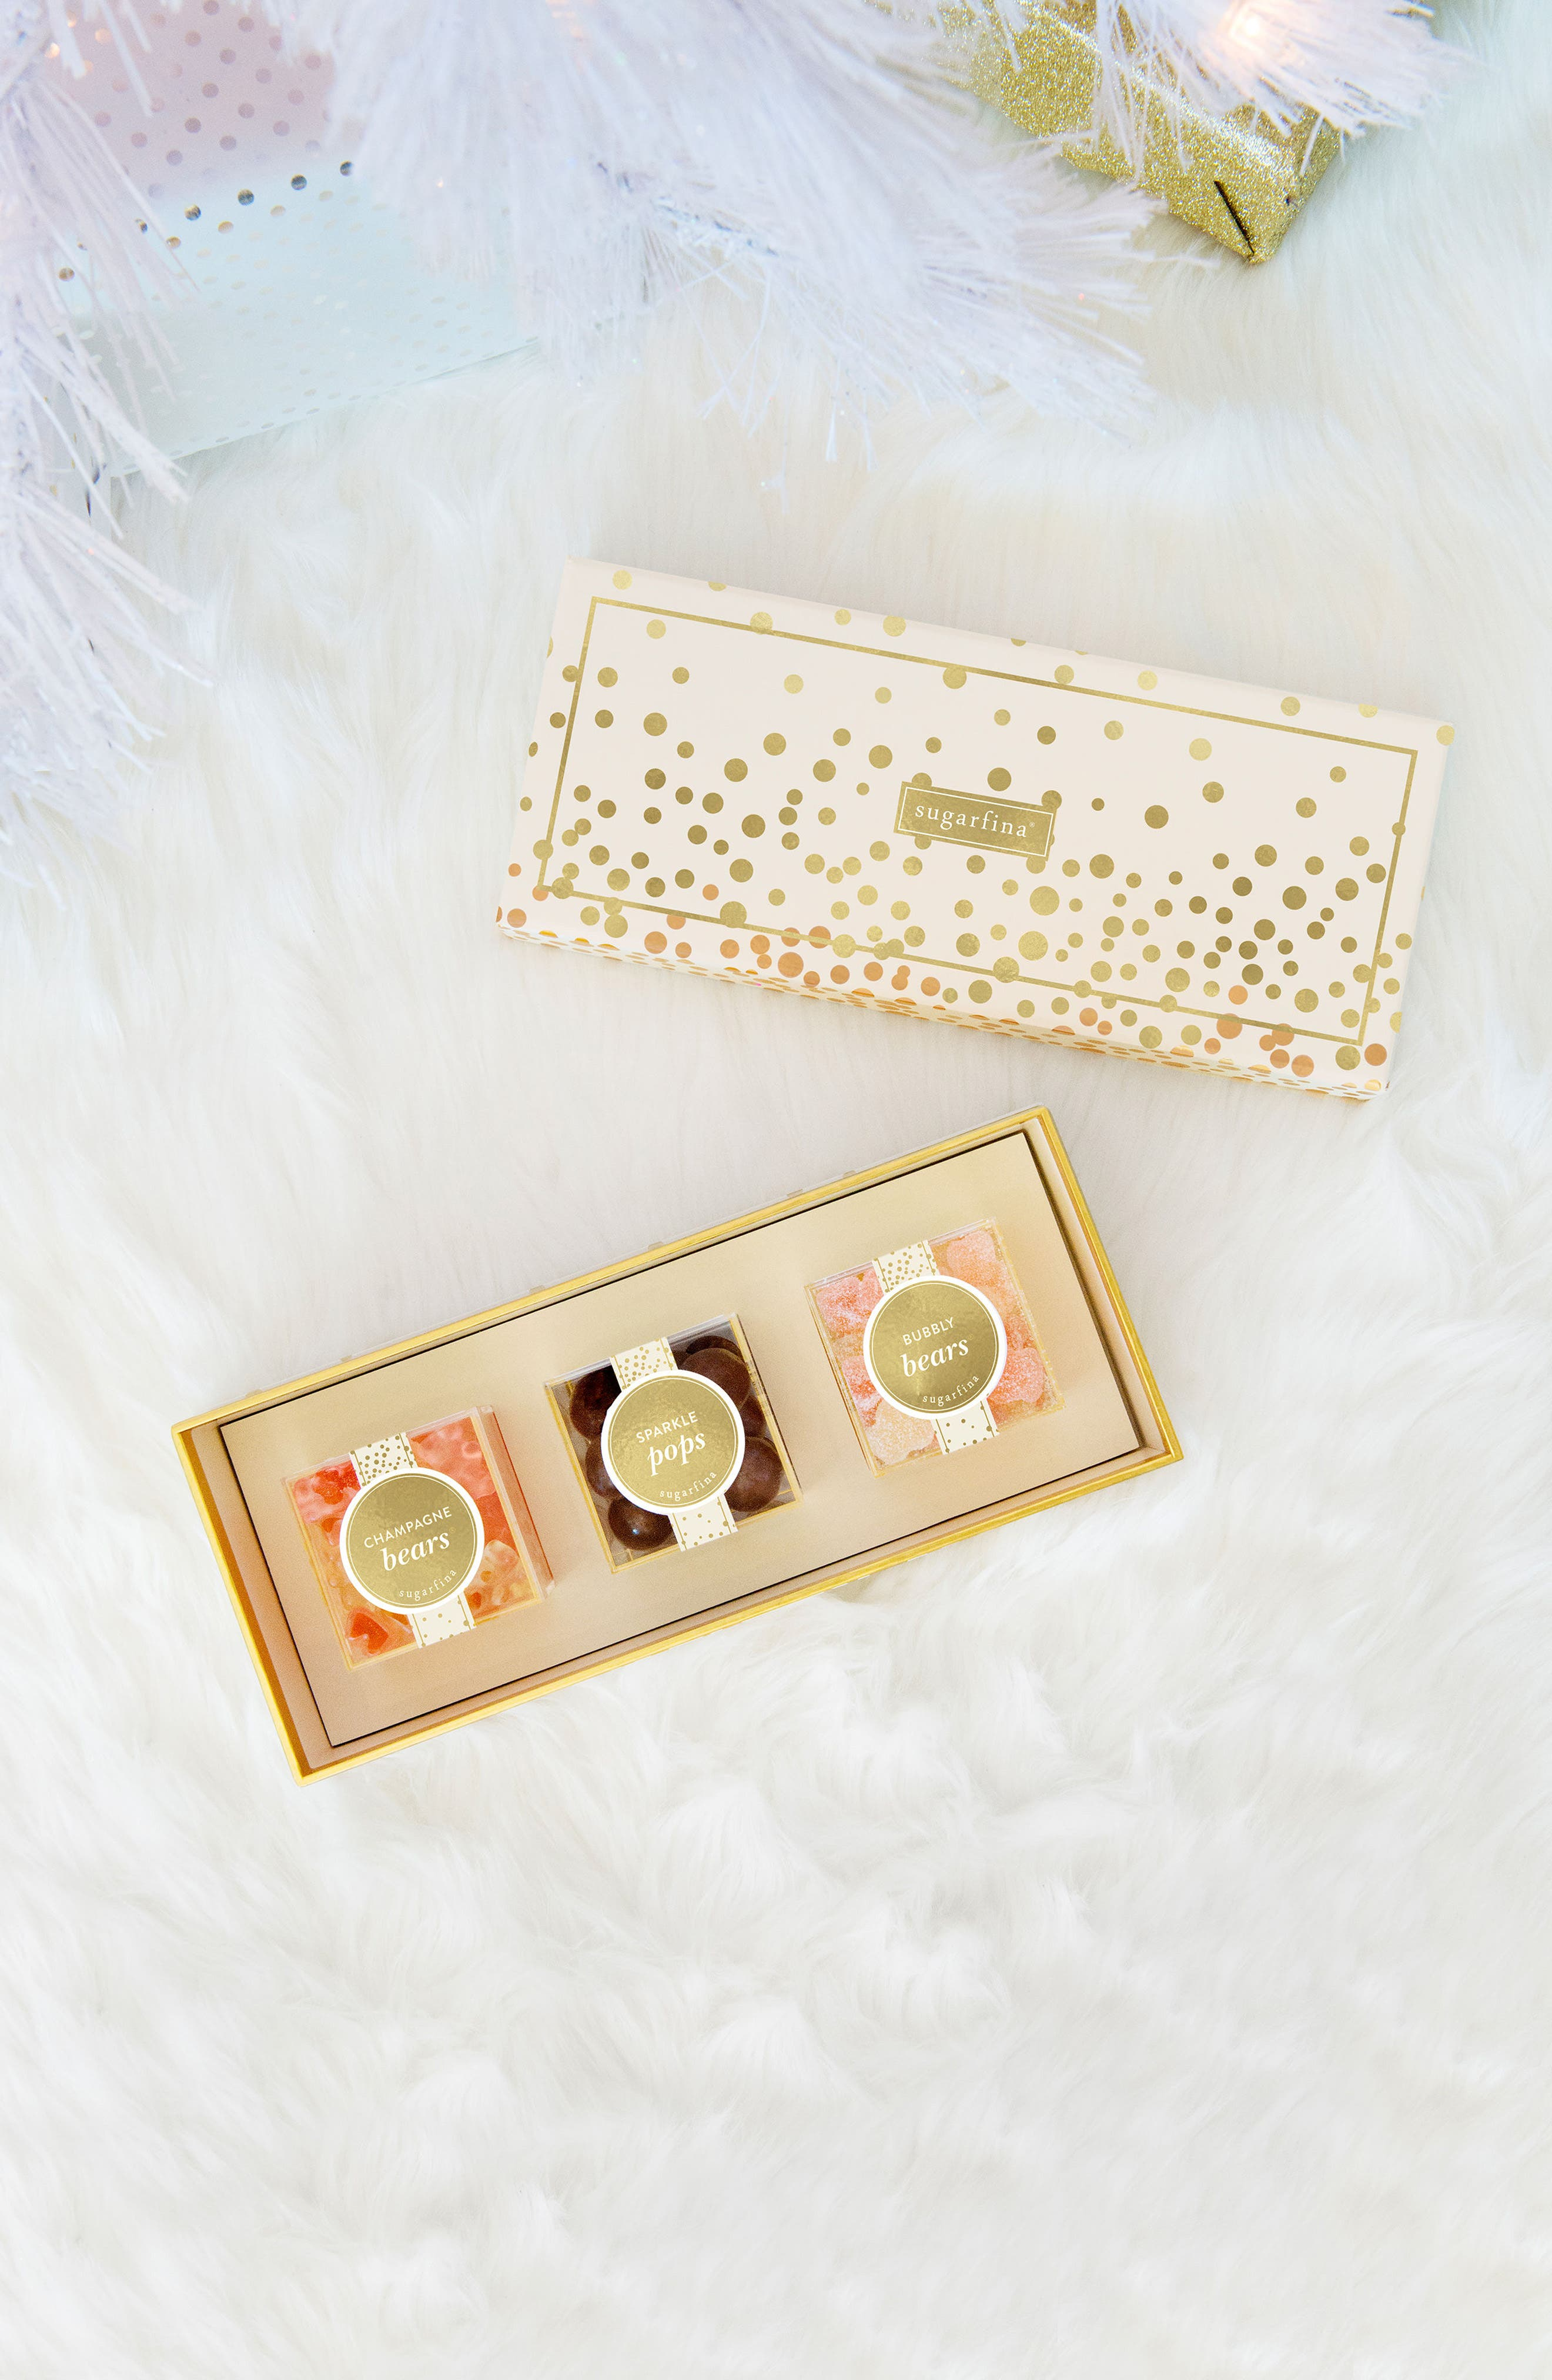 Sweet & Sparkling 3-Piece Candy Bento Box,                             Alternate thumbnail 4, color,                             250